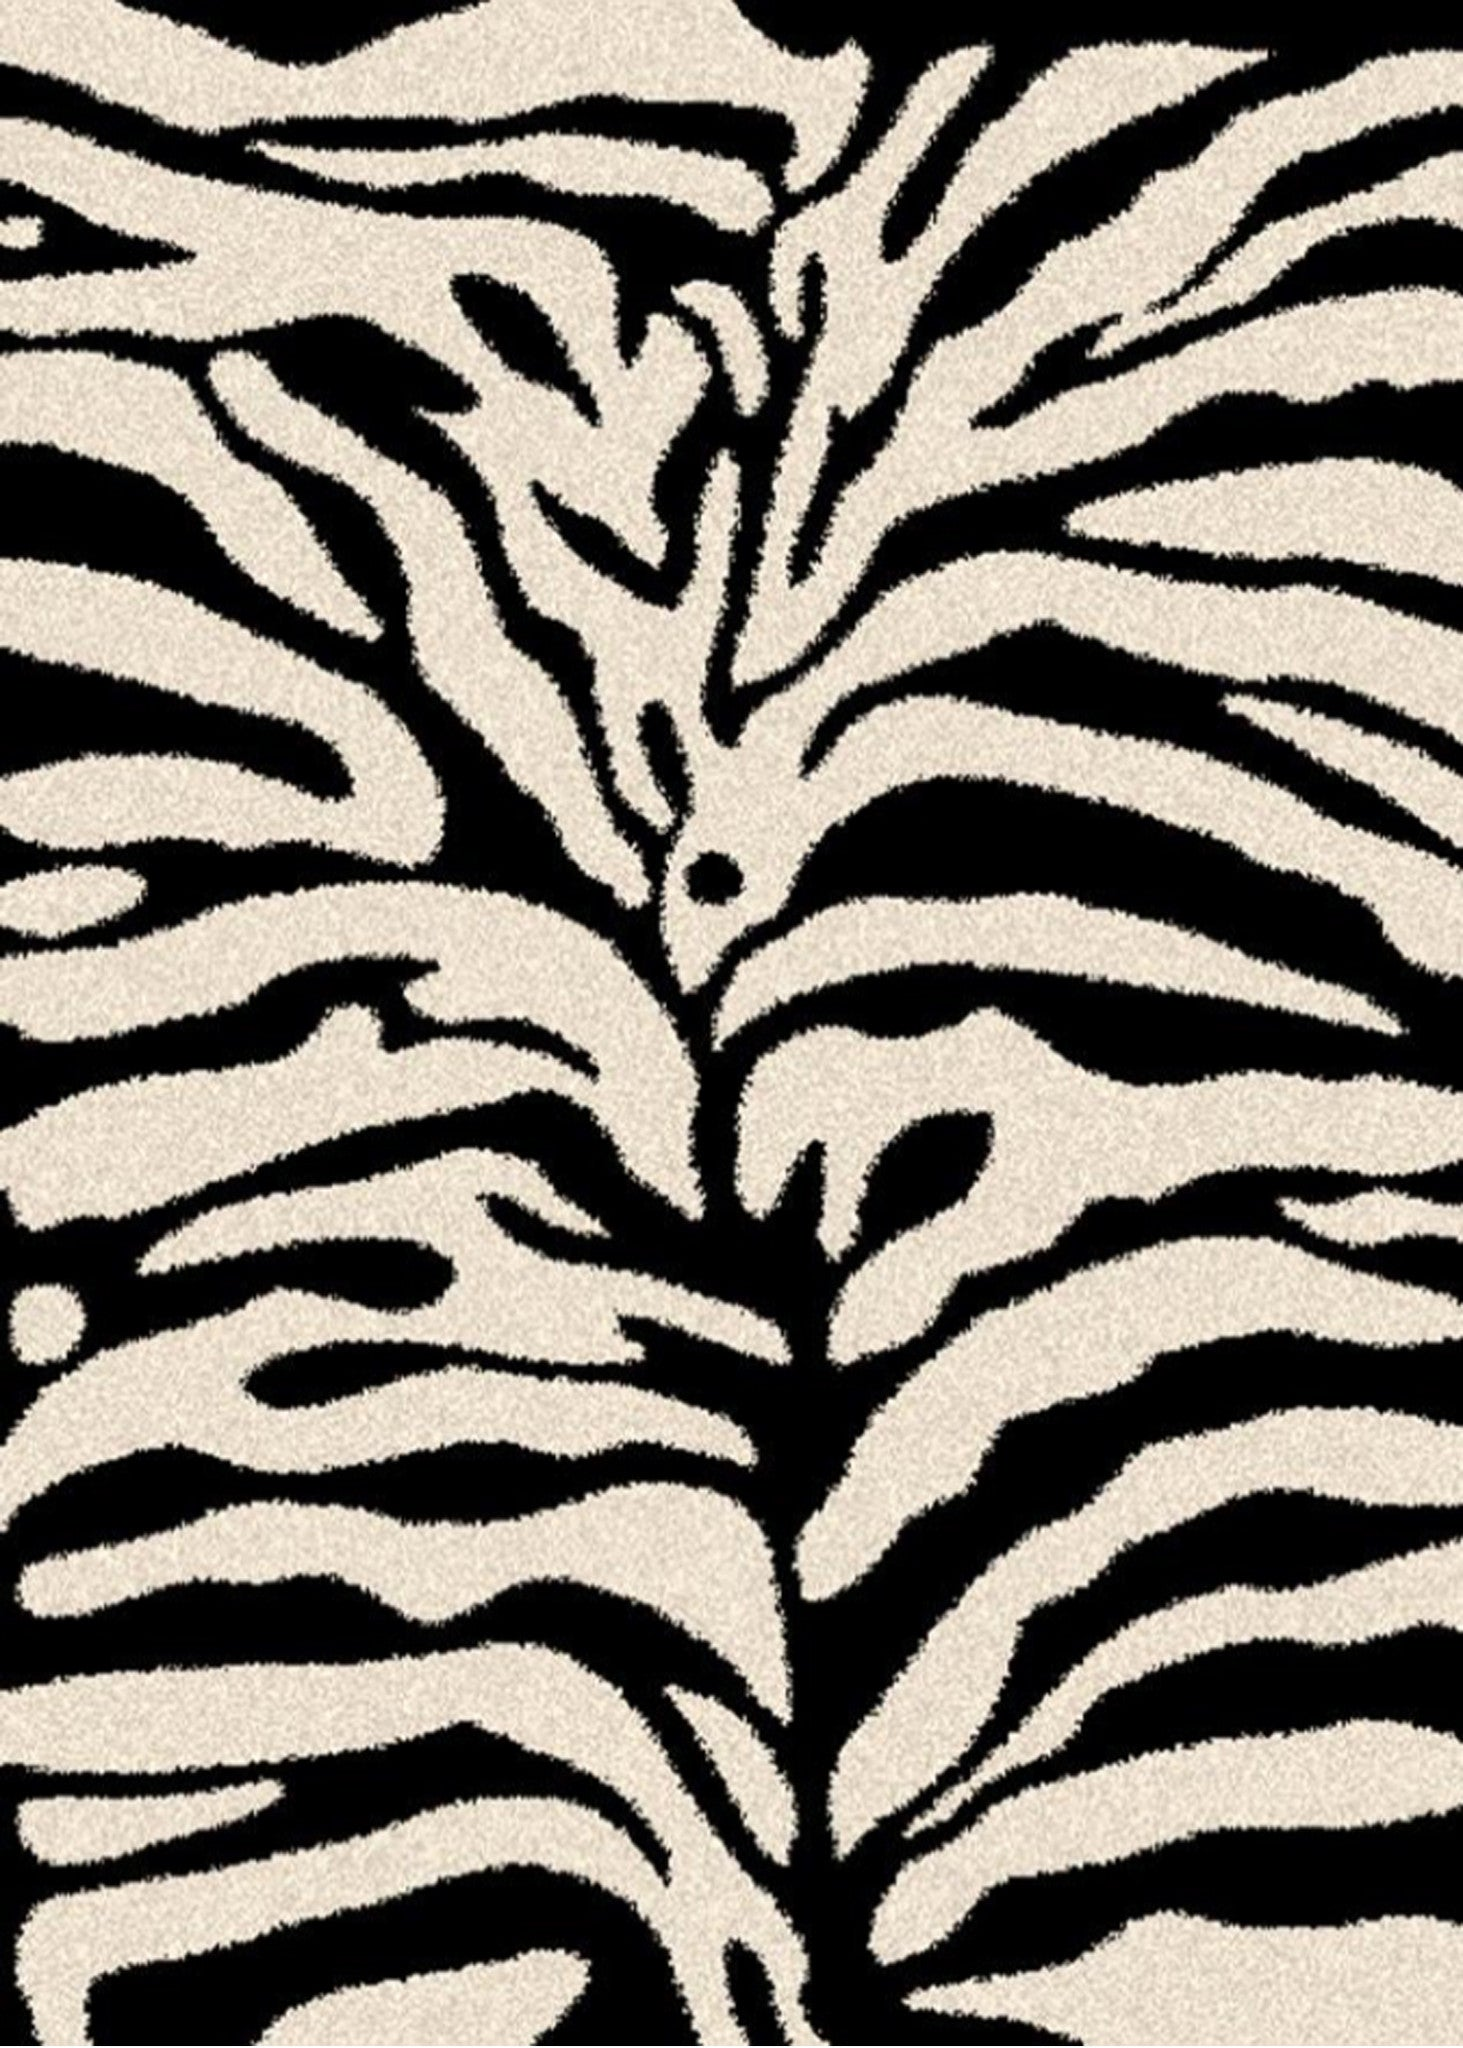 Mayberry Super Shag SUPS1352-Zebra Cream/Black Area Rug